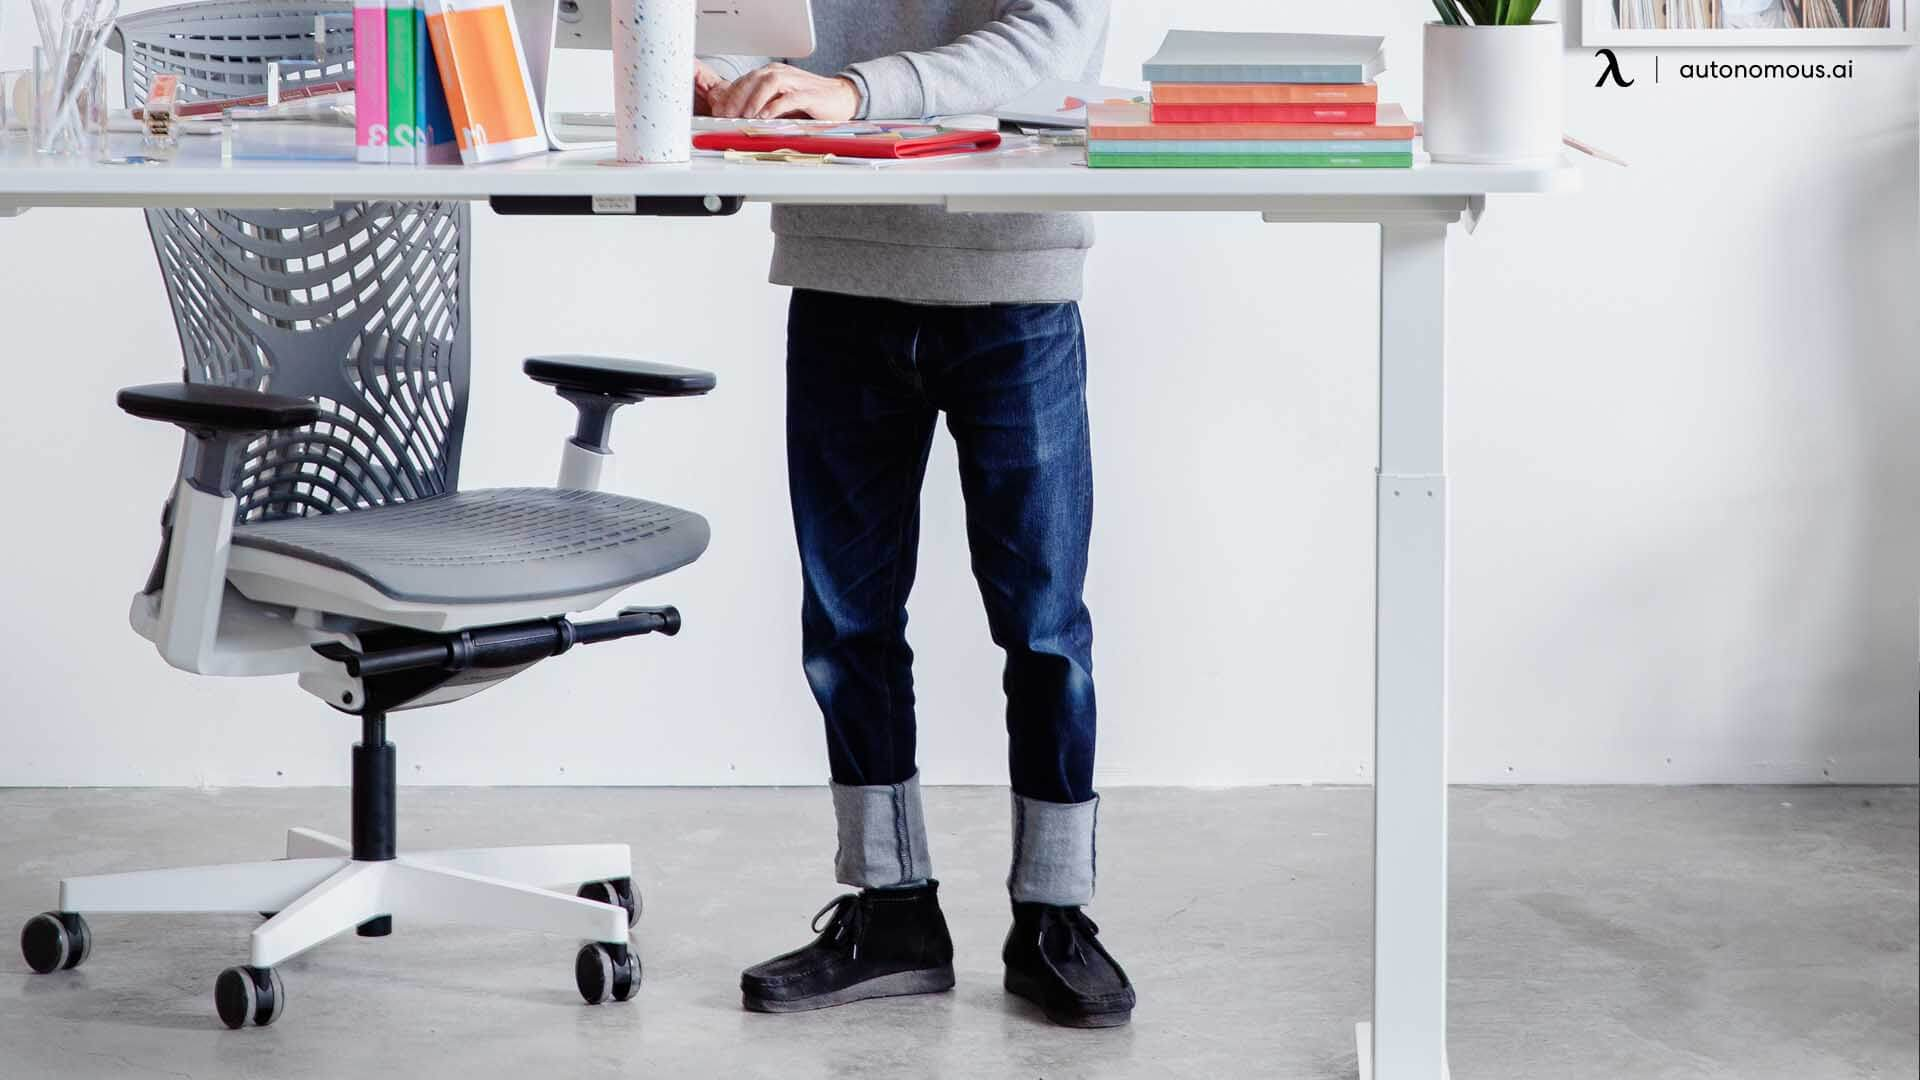 Comfortable footwear while using standing desk